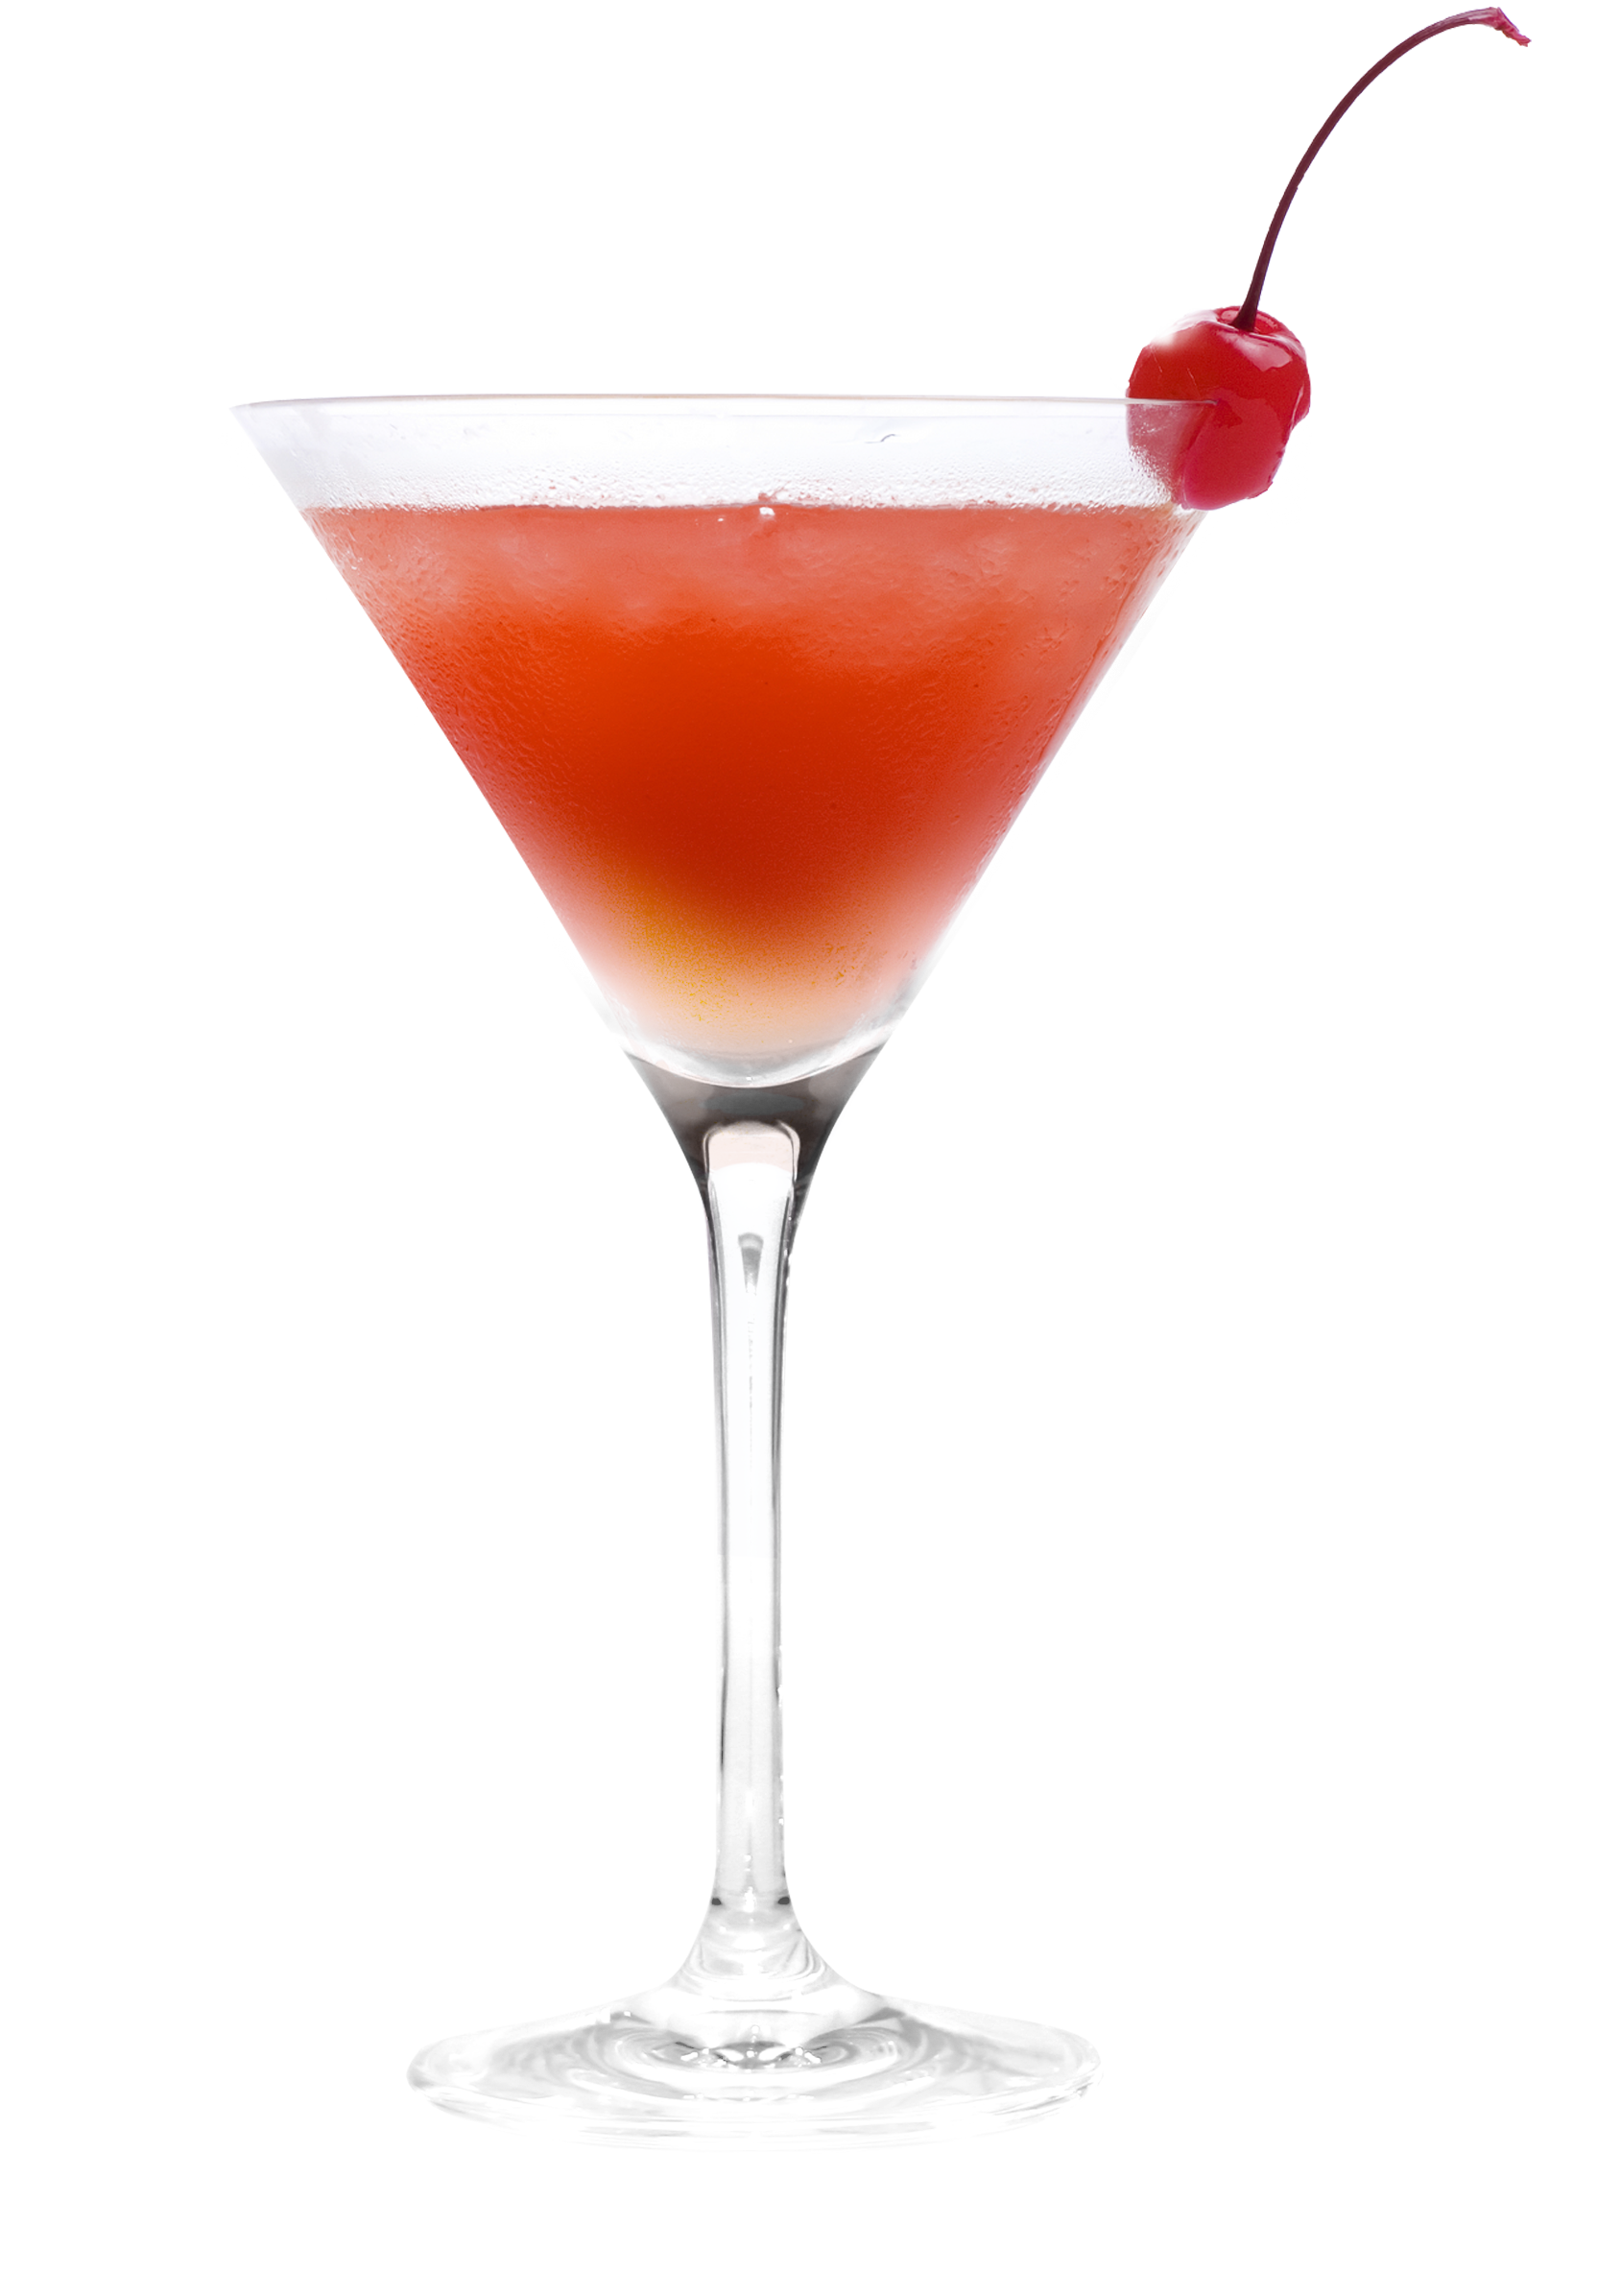 Drink Png 3 Png 1664 2392 Cocktails Glassware Martini Glass